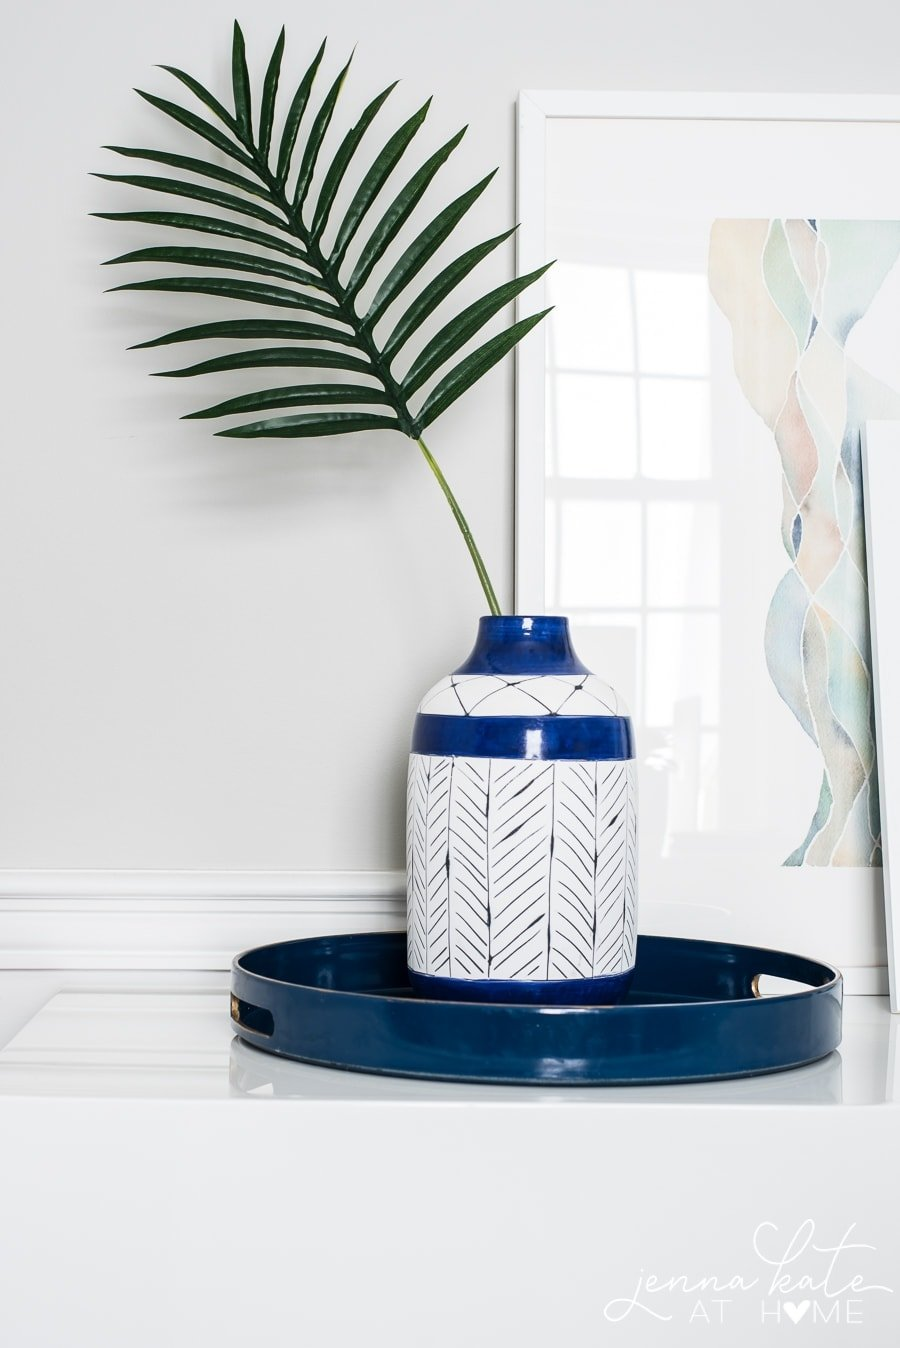 A white jug with painted dark blue line patterns, resting on a circular blue tray, holding a single palm frond near large framed art